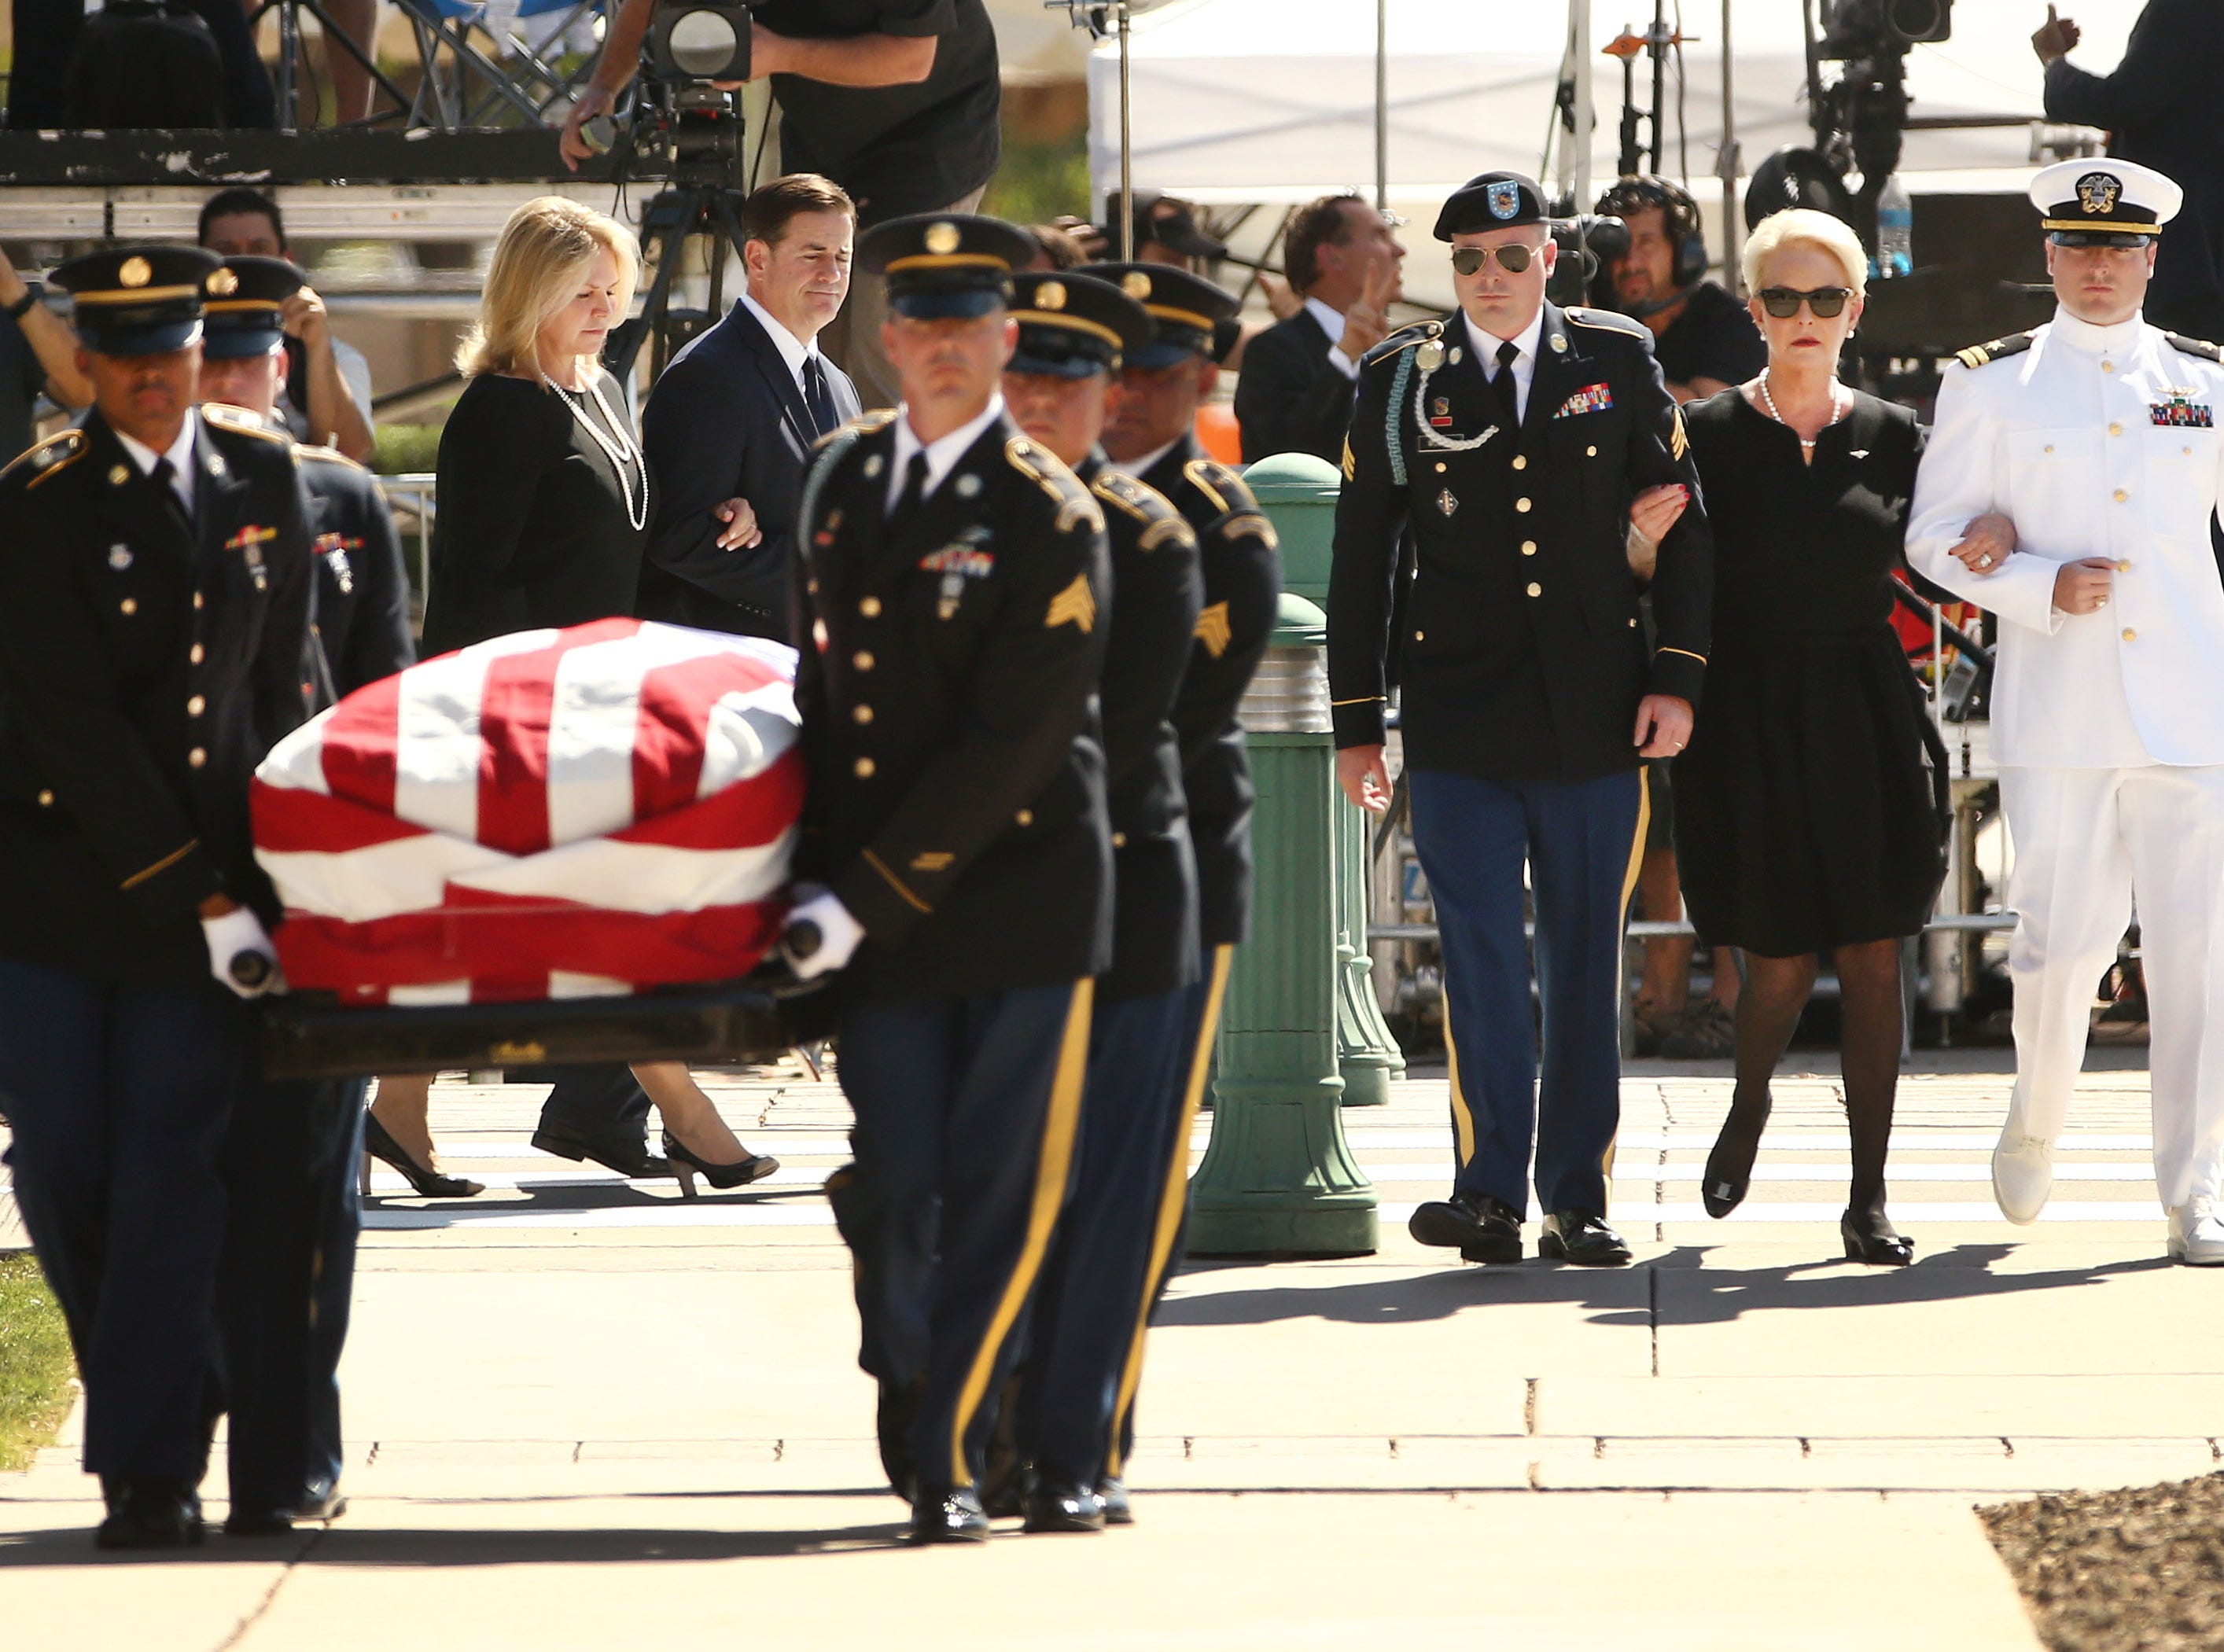 Mrs. Cindy McCain is escorted by her sons, Jimmy McCain and Jack McCain, and Arizona Gov. Doug Ducey and First Lady Angela Ducey (left) as they follow the casket of U.S. Sen. John McCain for his memorial service at the Arizona State Capitol on Aug. 29, 2018, in Phoenix, Ariz.